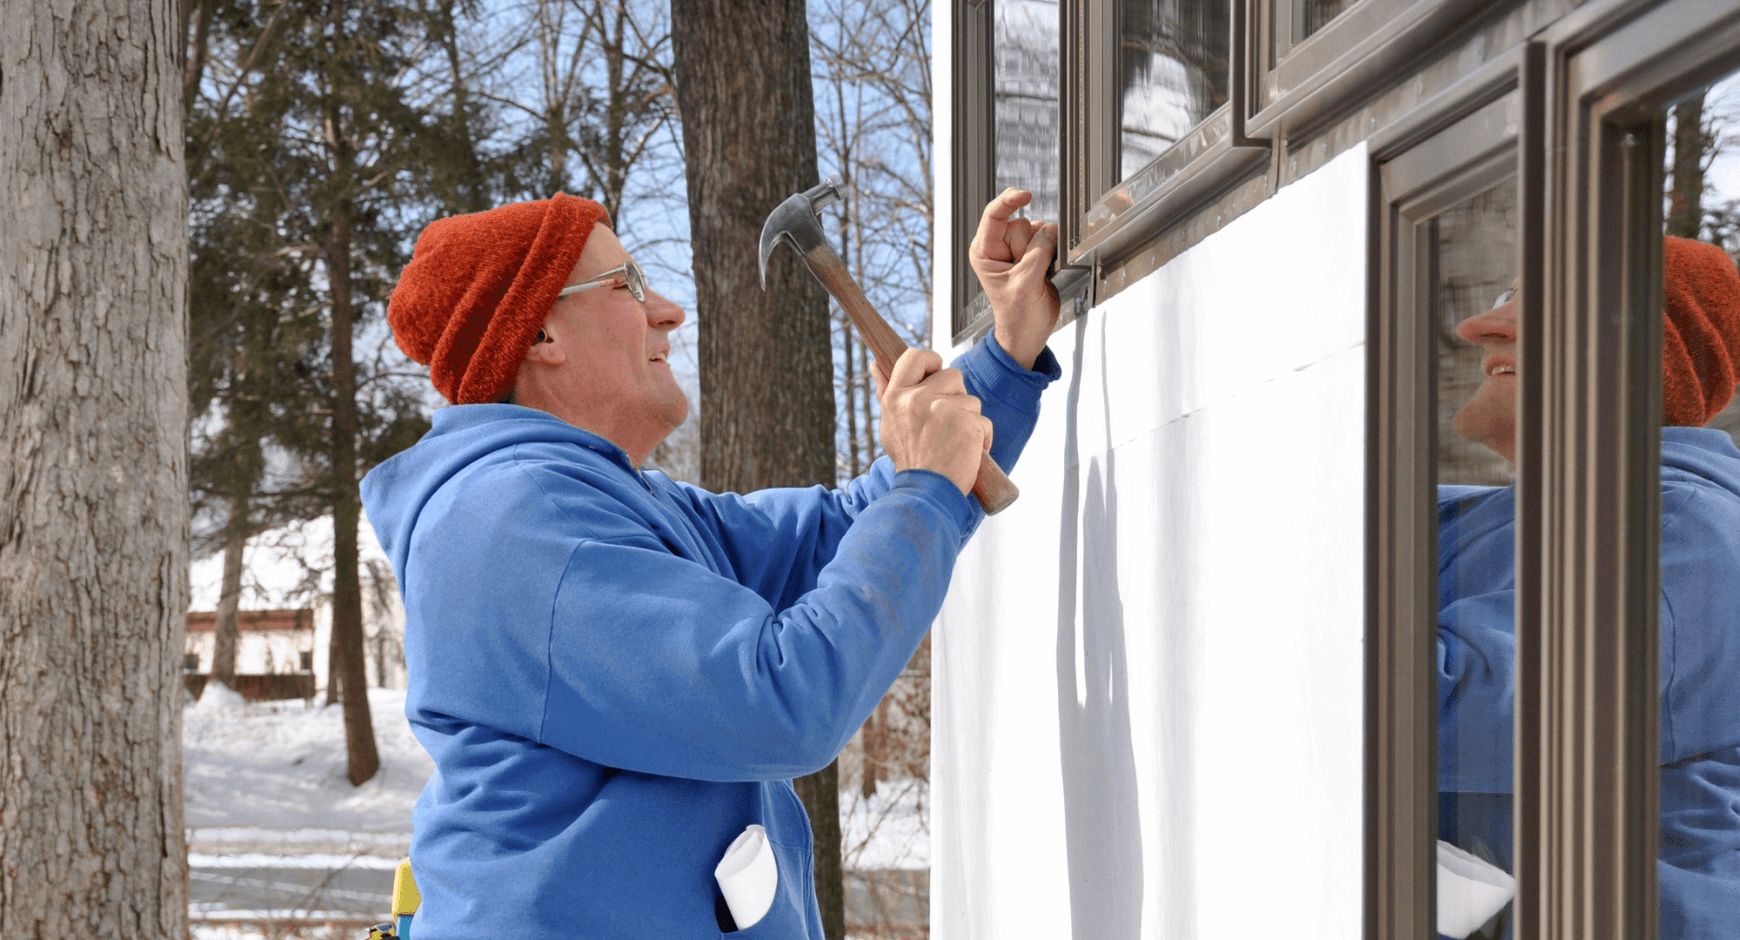 Image of a man replacing windows during the winter in the snow